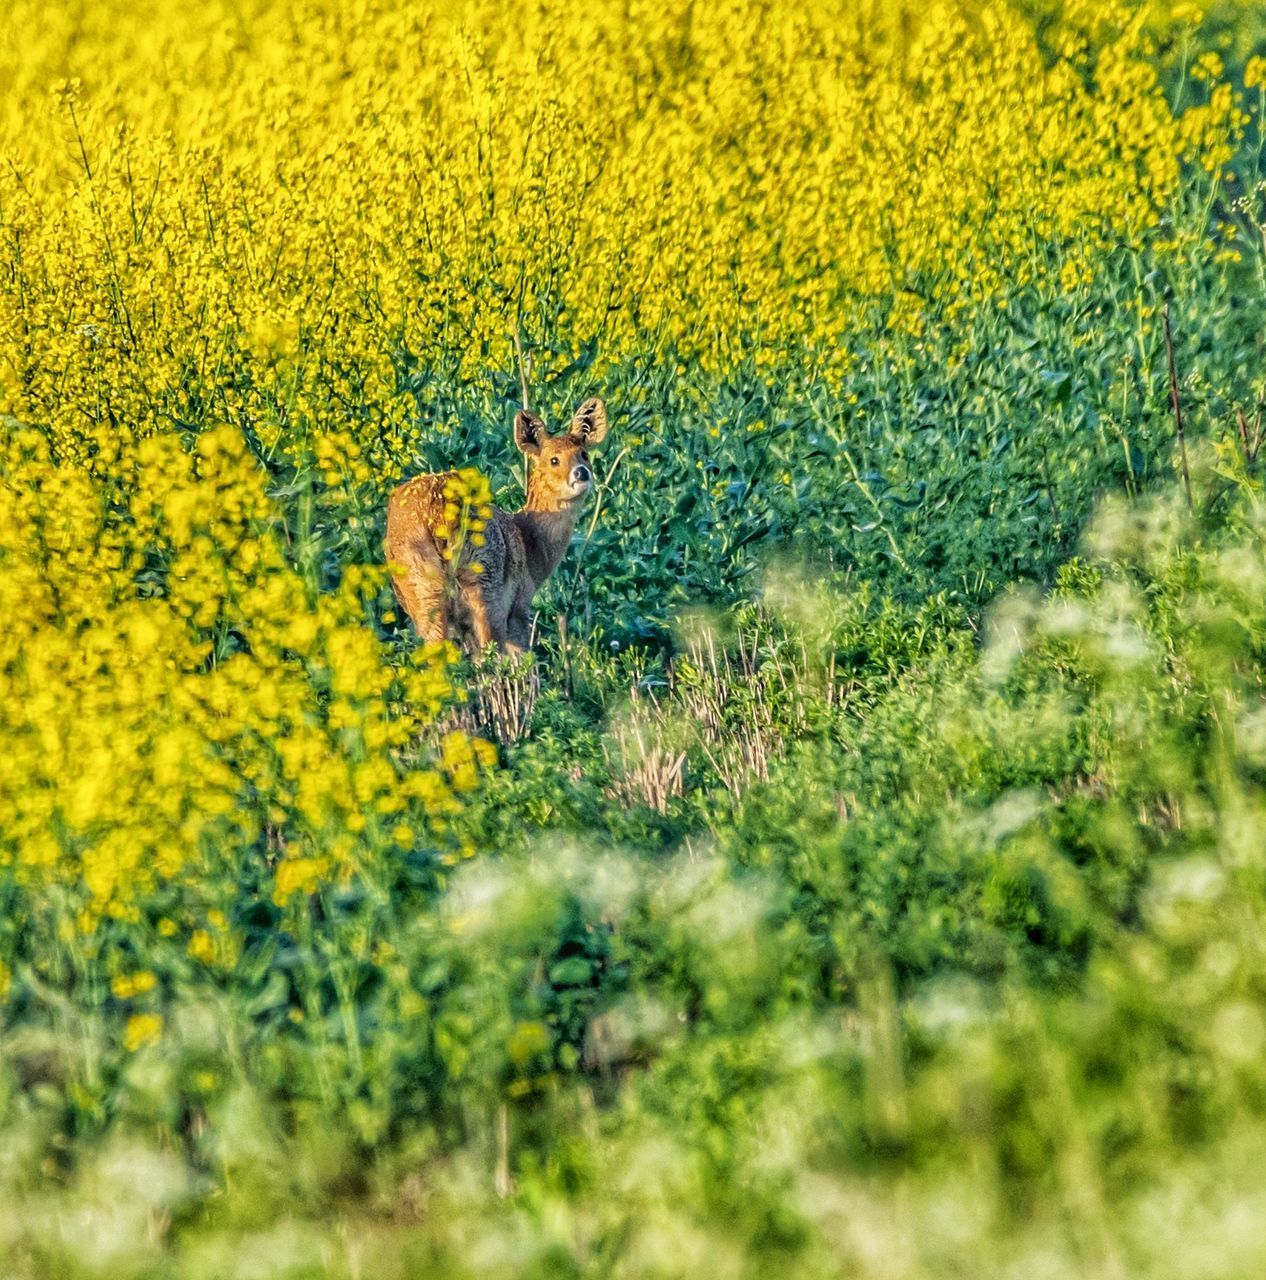 animal, mammal, animal themes, yellow, one animal, plant, animal wildlife, no people, animals in the wild, nature, field, land, cat, feline, flowering plant, day, beauty in nature, flower, vertebrate, selective focus, outdoors